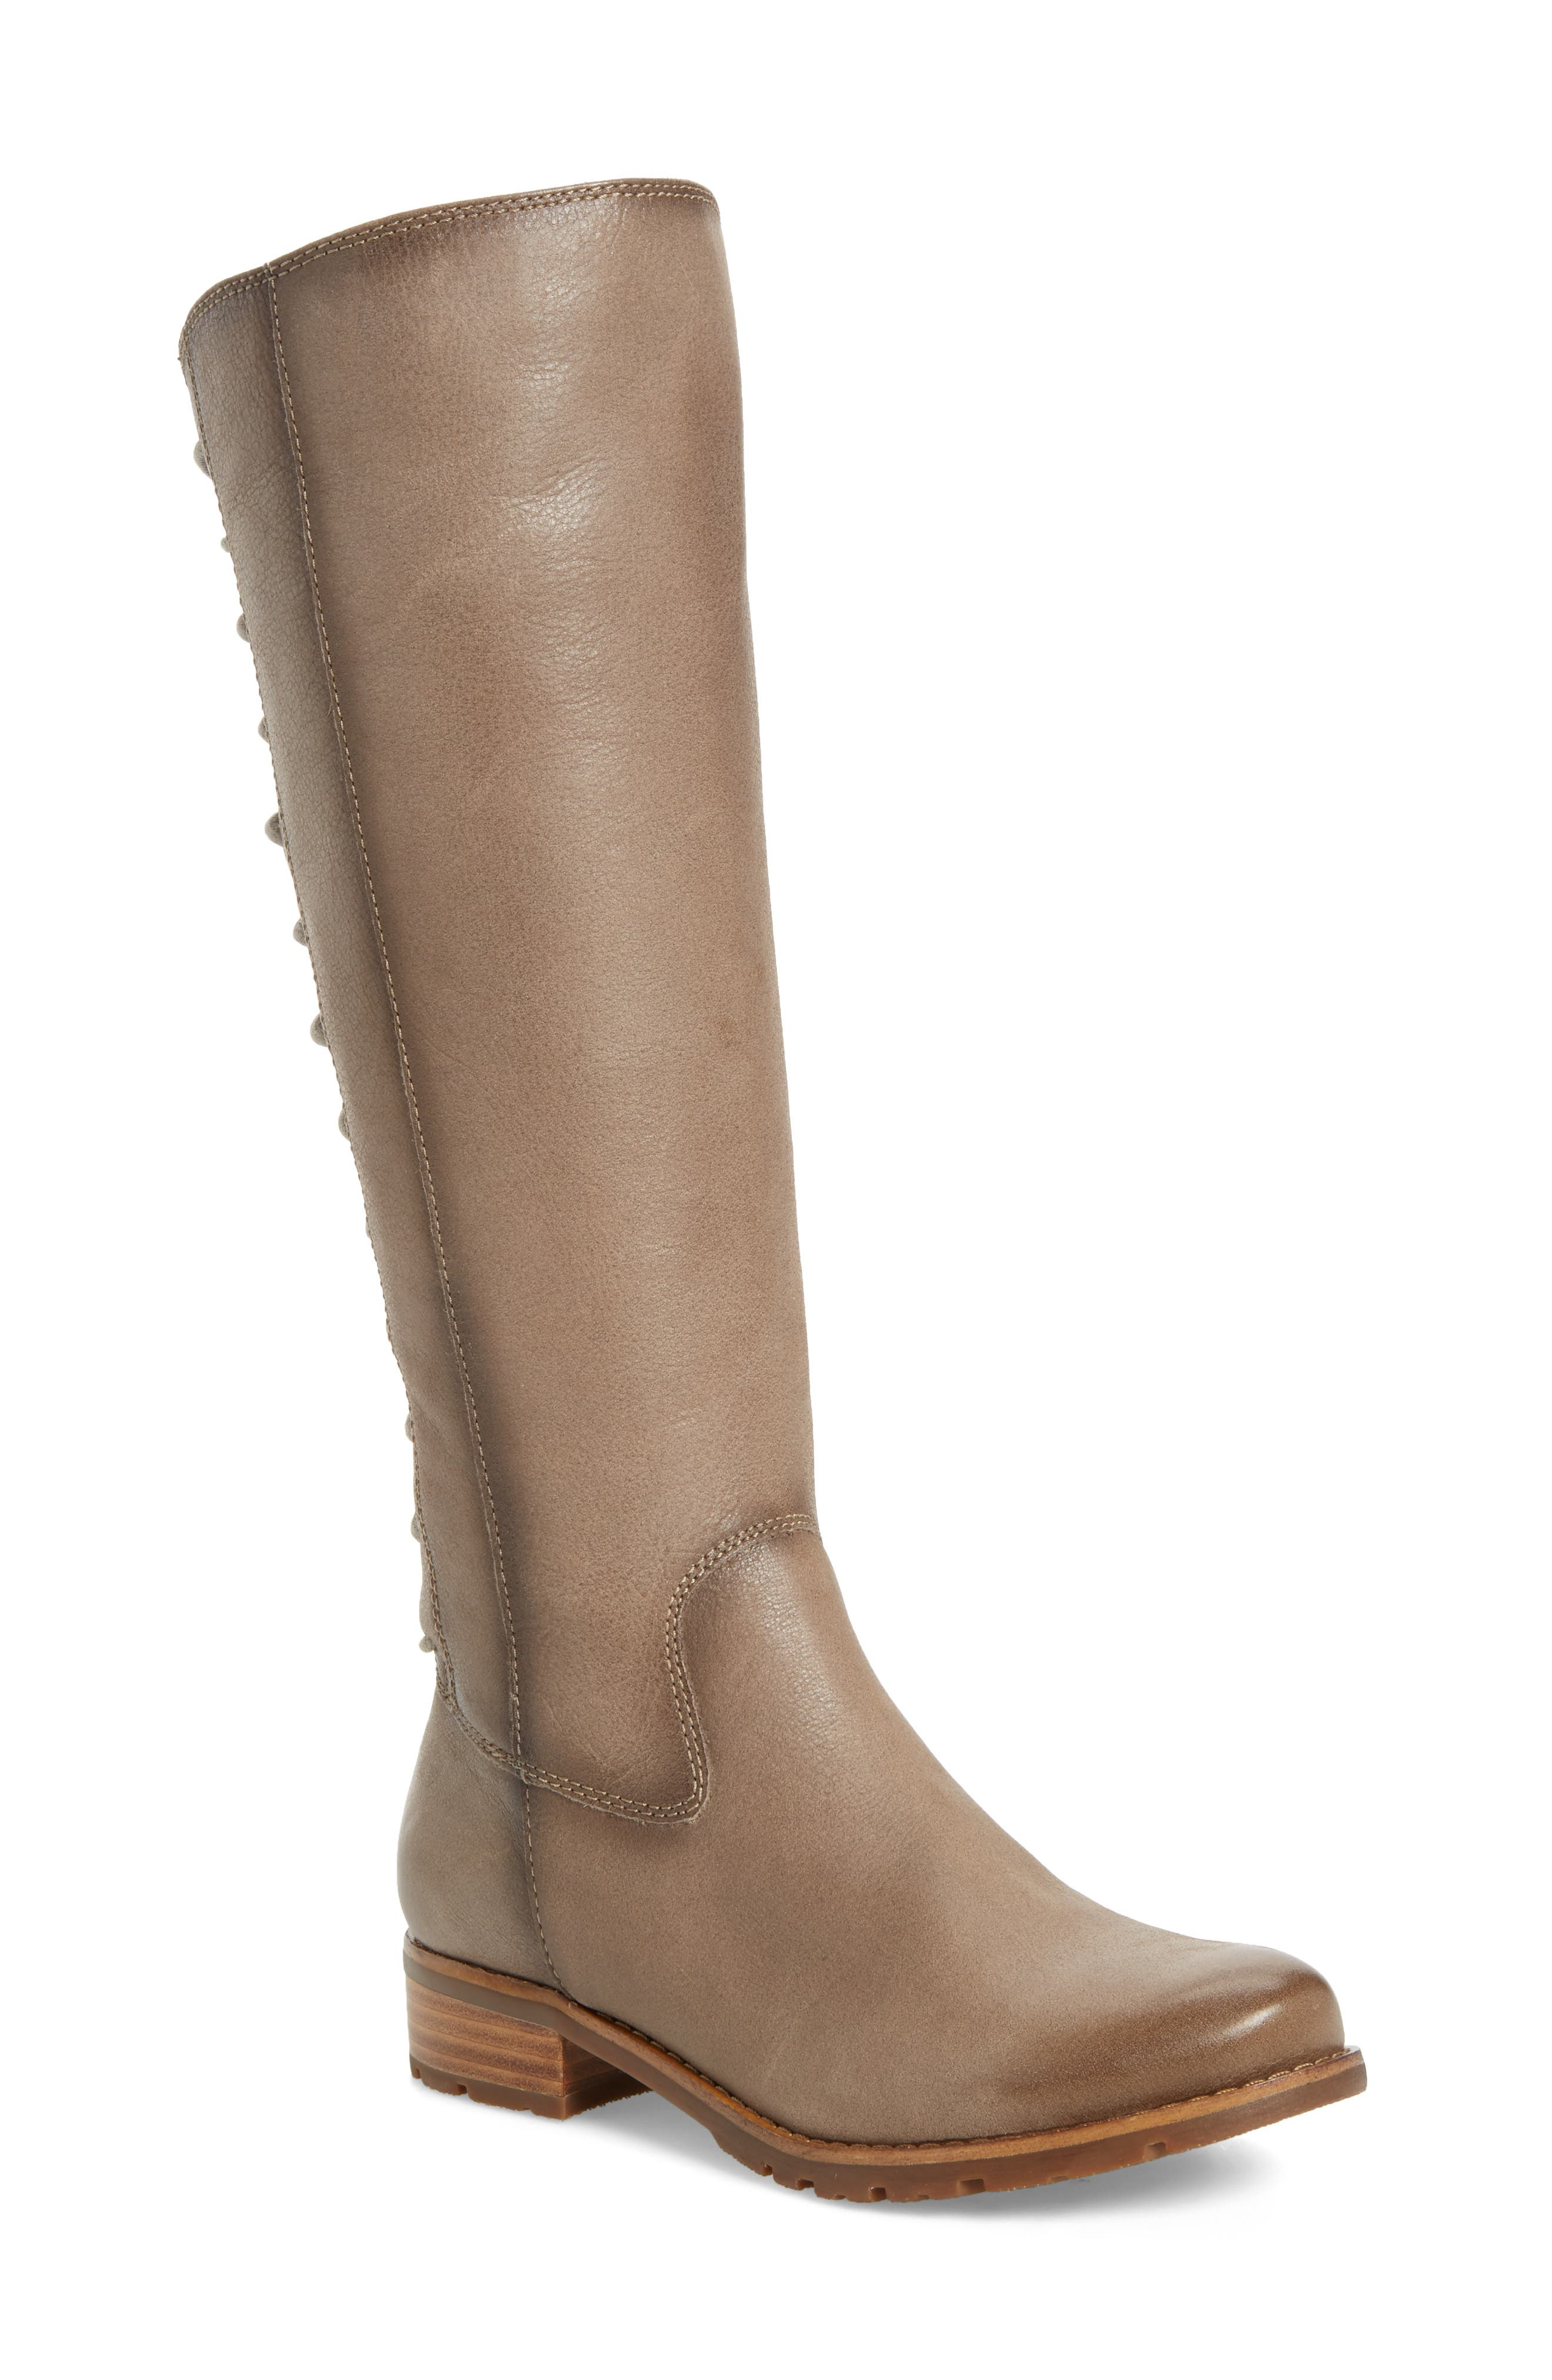 'Sharnell' Riding Boot,                             Main thumbnail 1, color,                             030